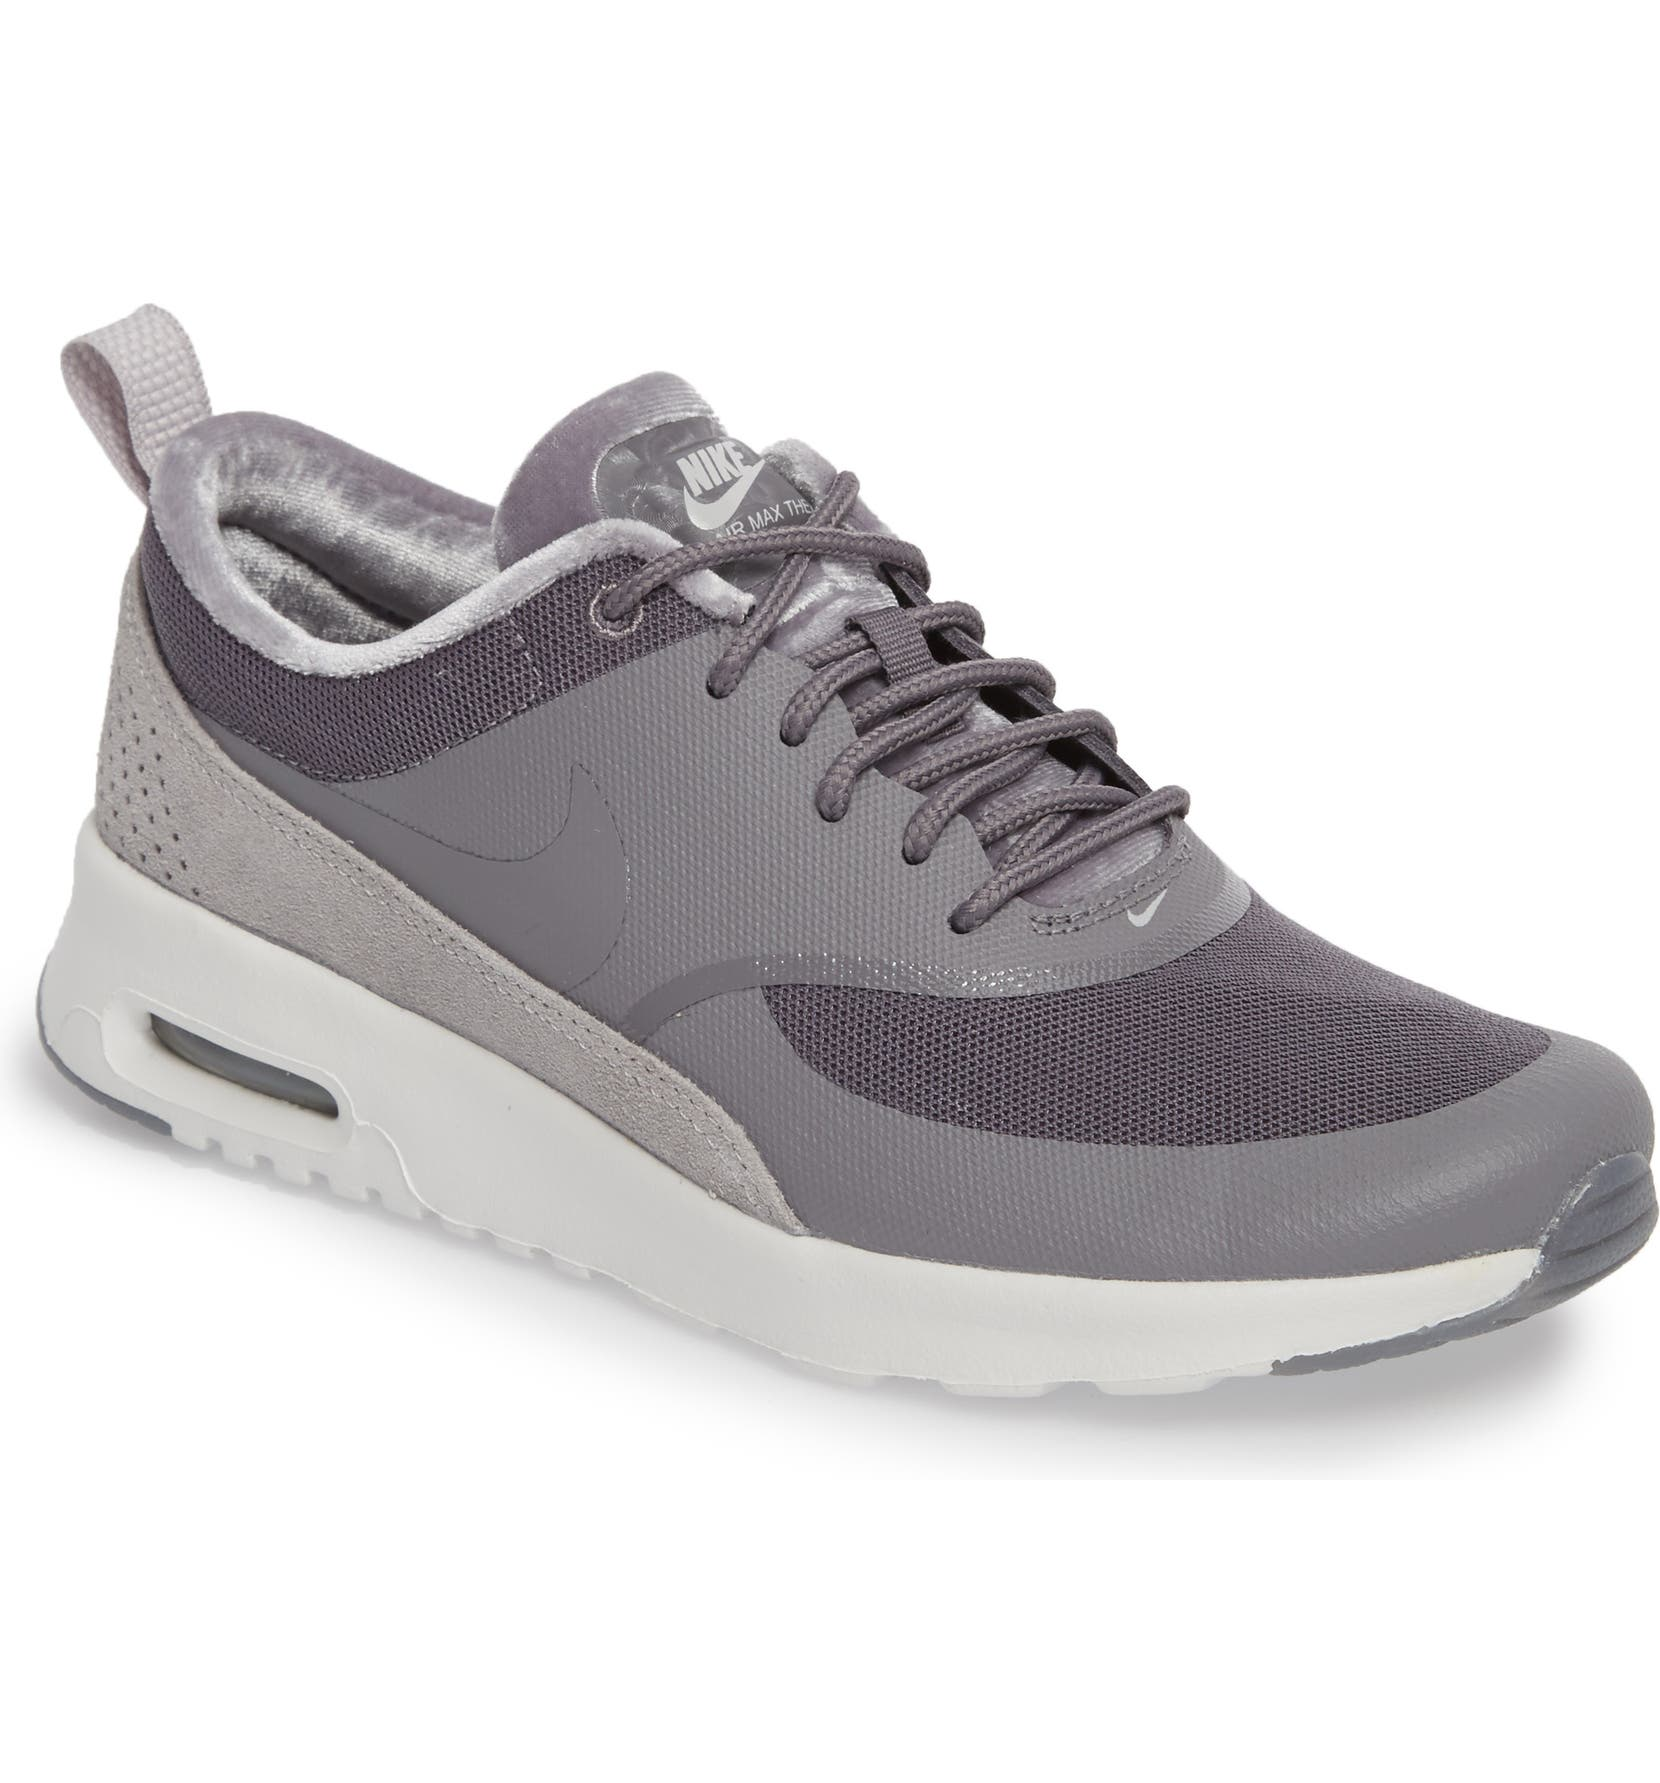 separation shoes 101e5 39dad Nike Air Max Thea LX Sneaker (Women)  Nordstrom